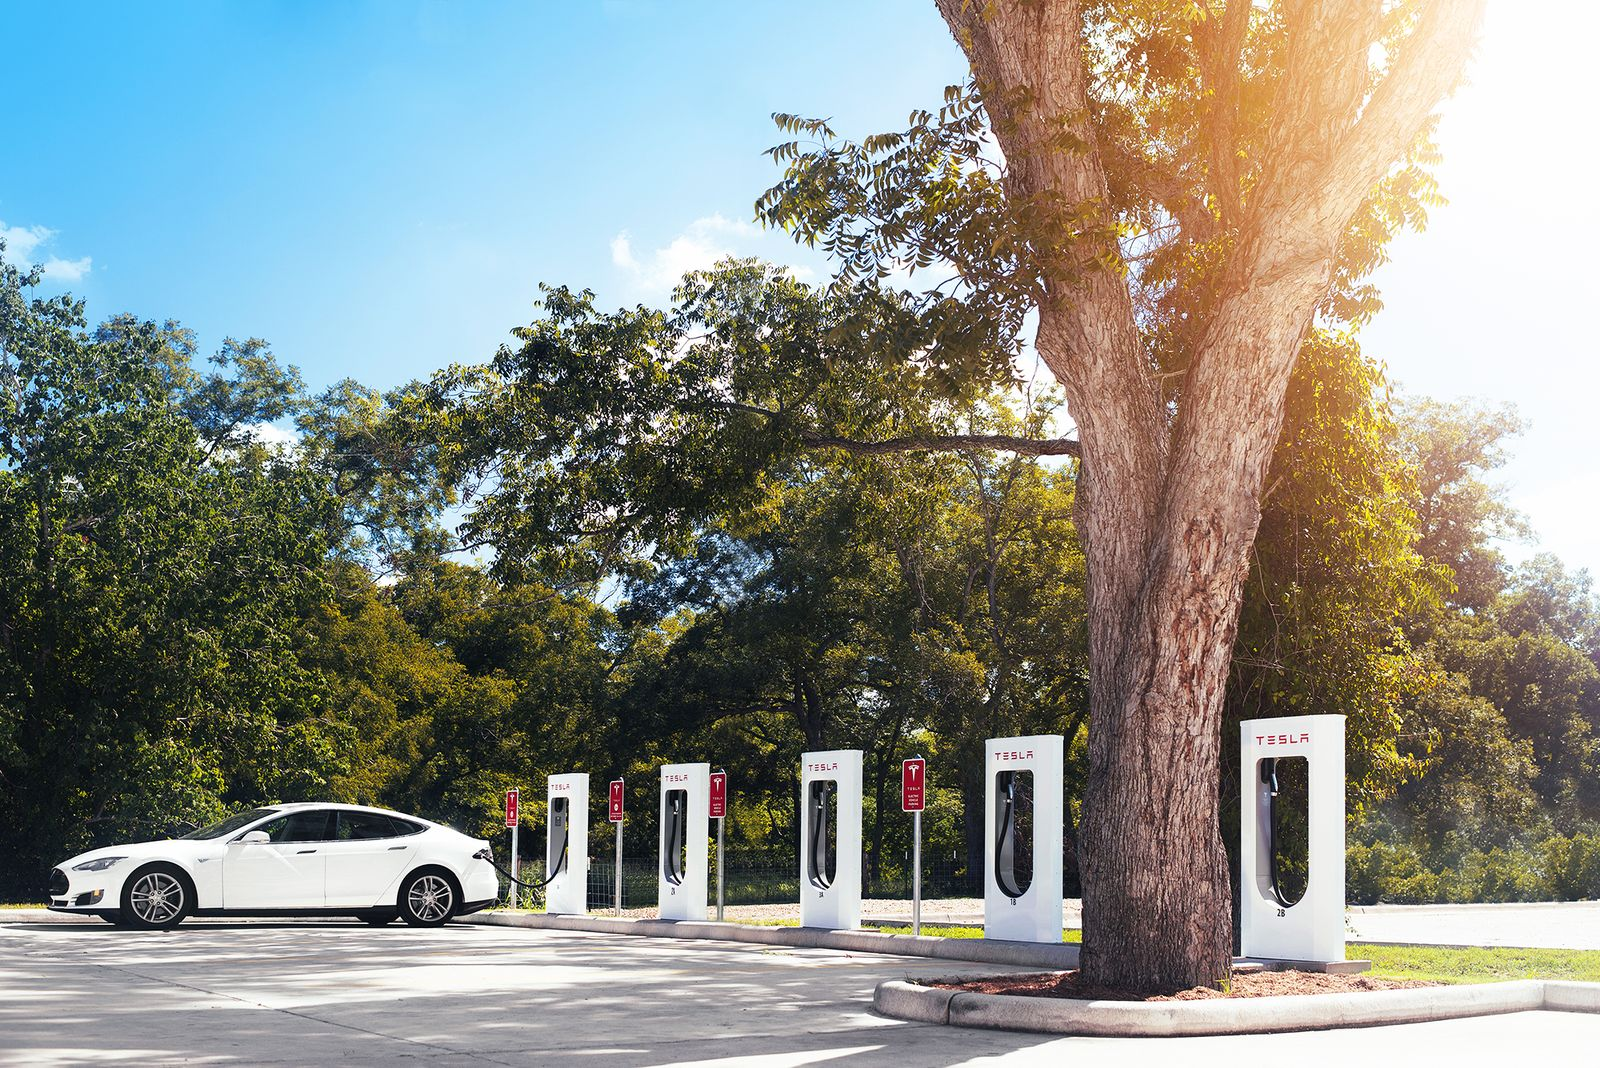 Supercharger Station / Tesla